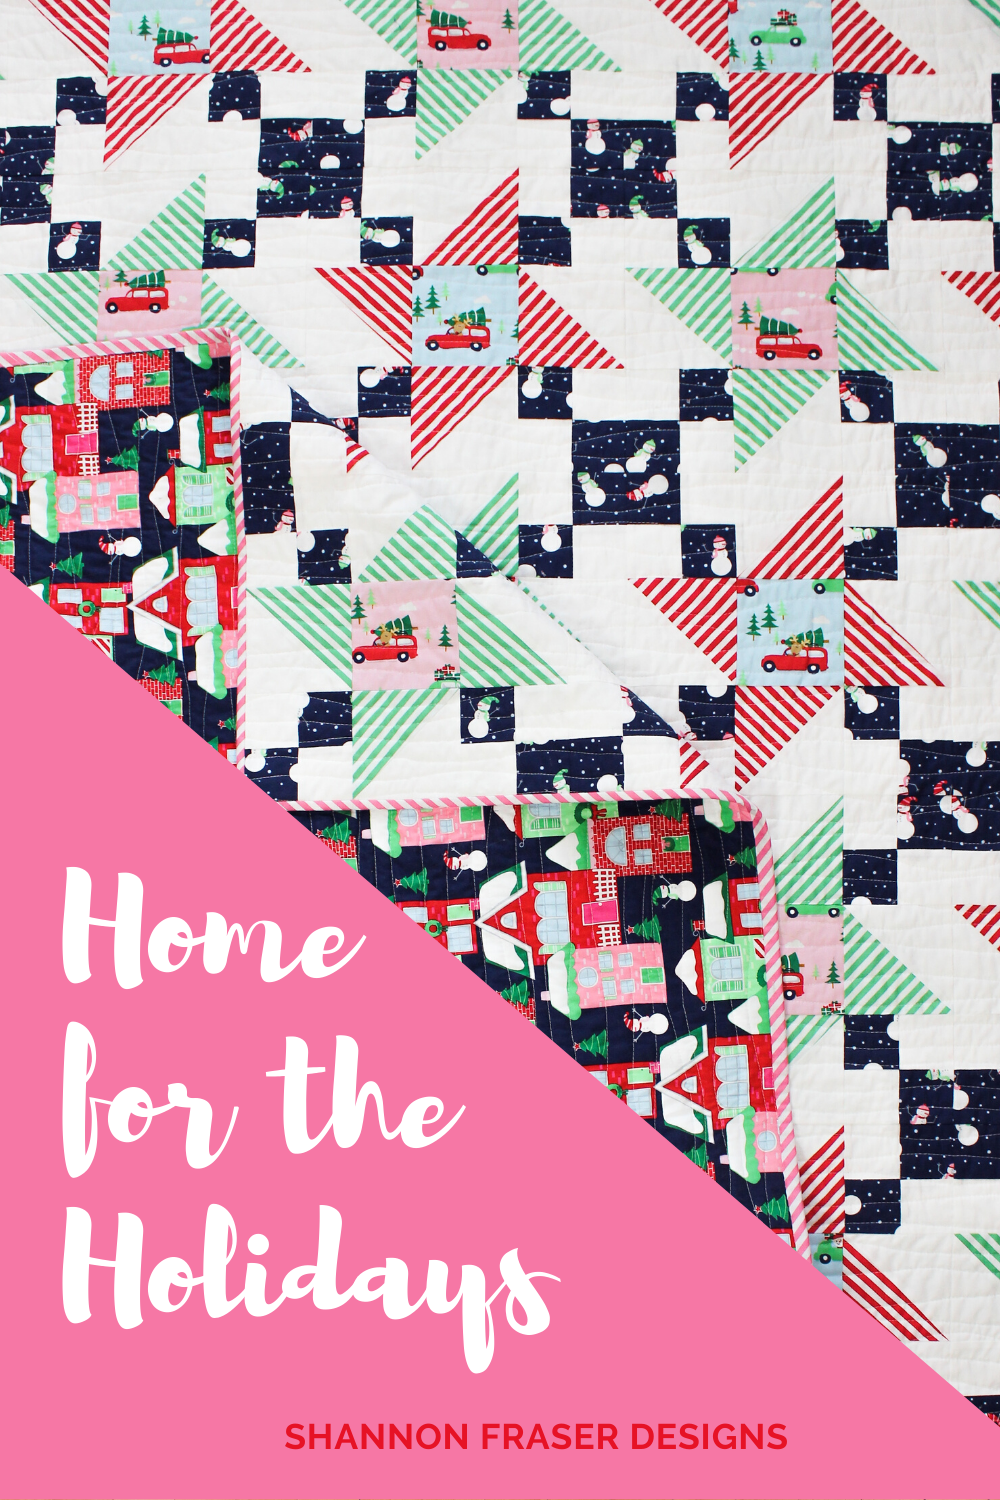 Home for the Holidays Irish Vortex quilt | Shannon Fraser Designs #christmas #holidayquilt